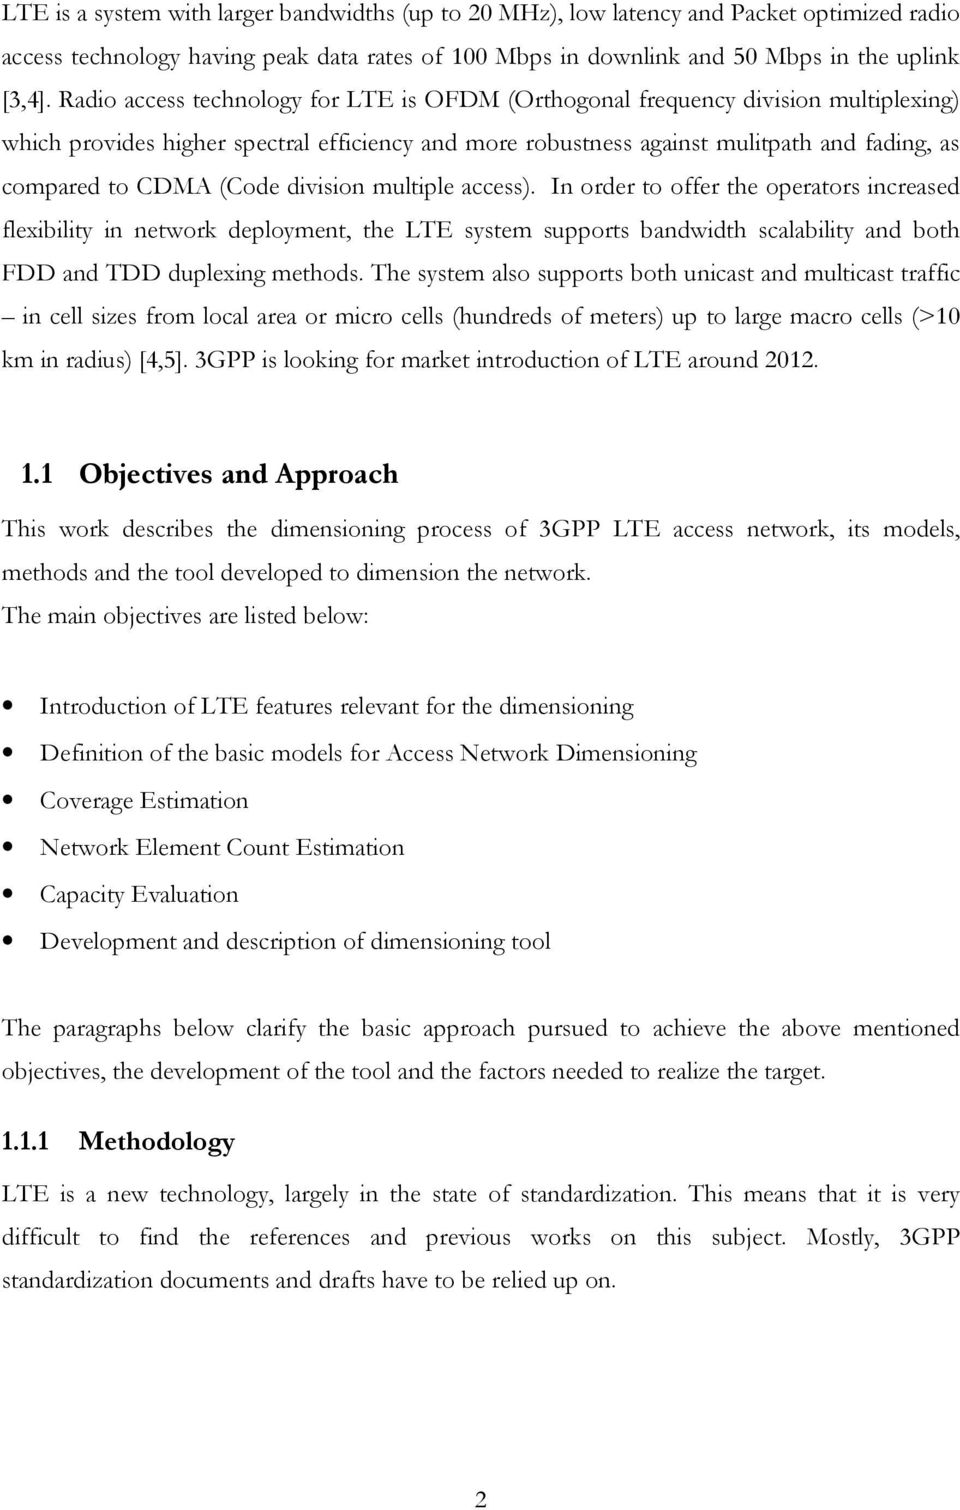 dimensioning of lte network. description of models and tool